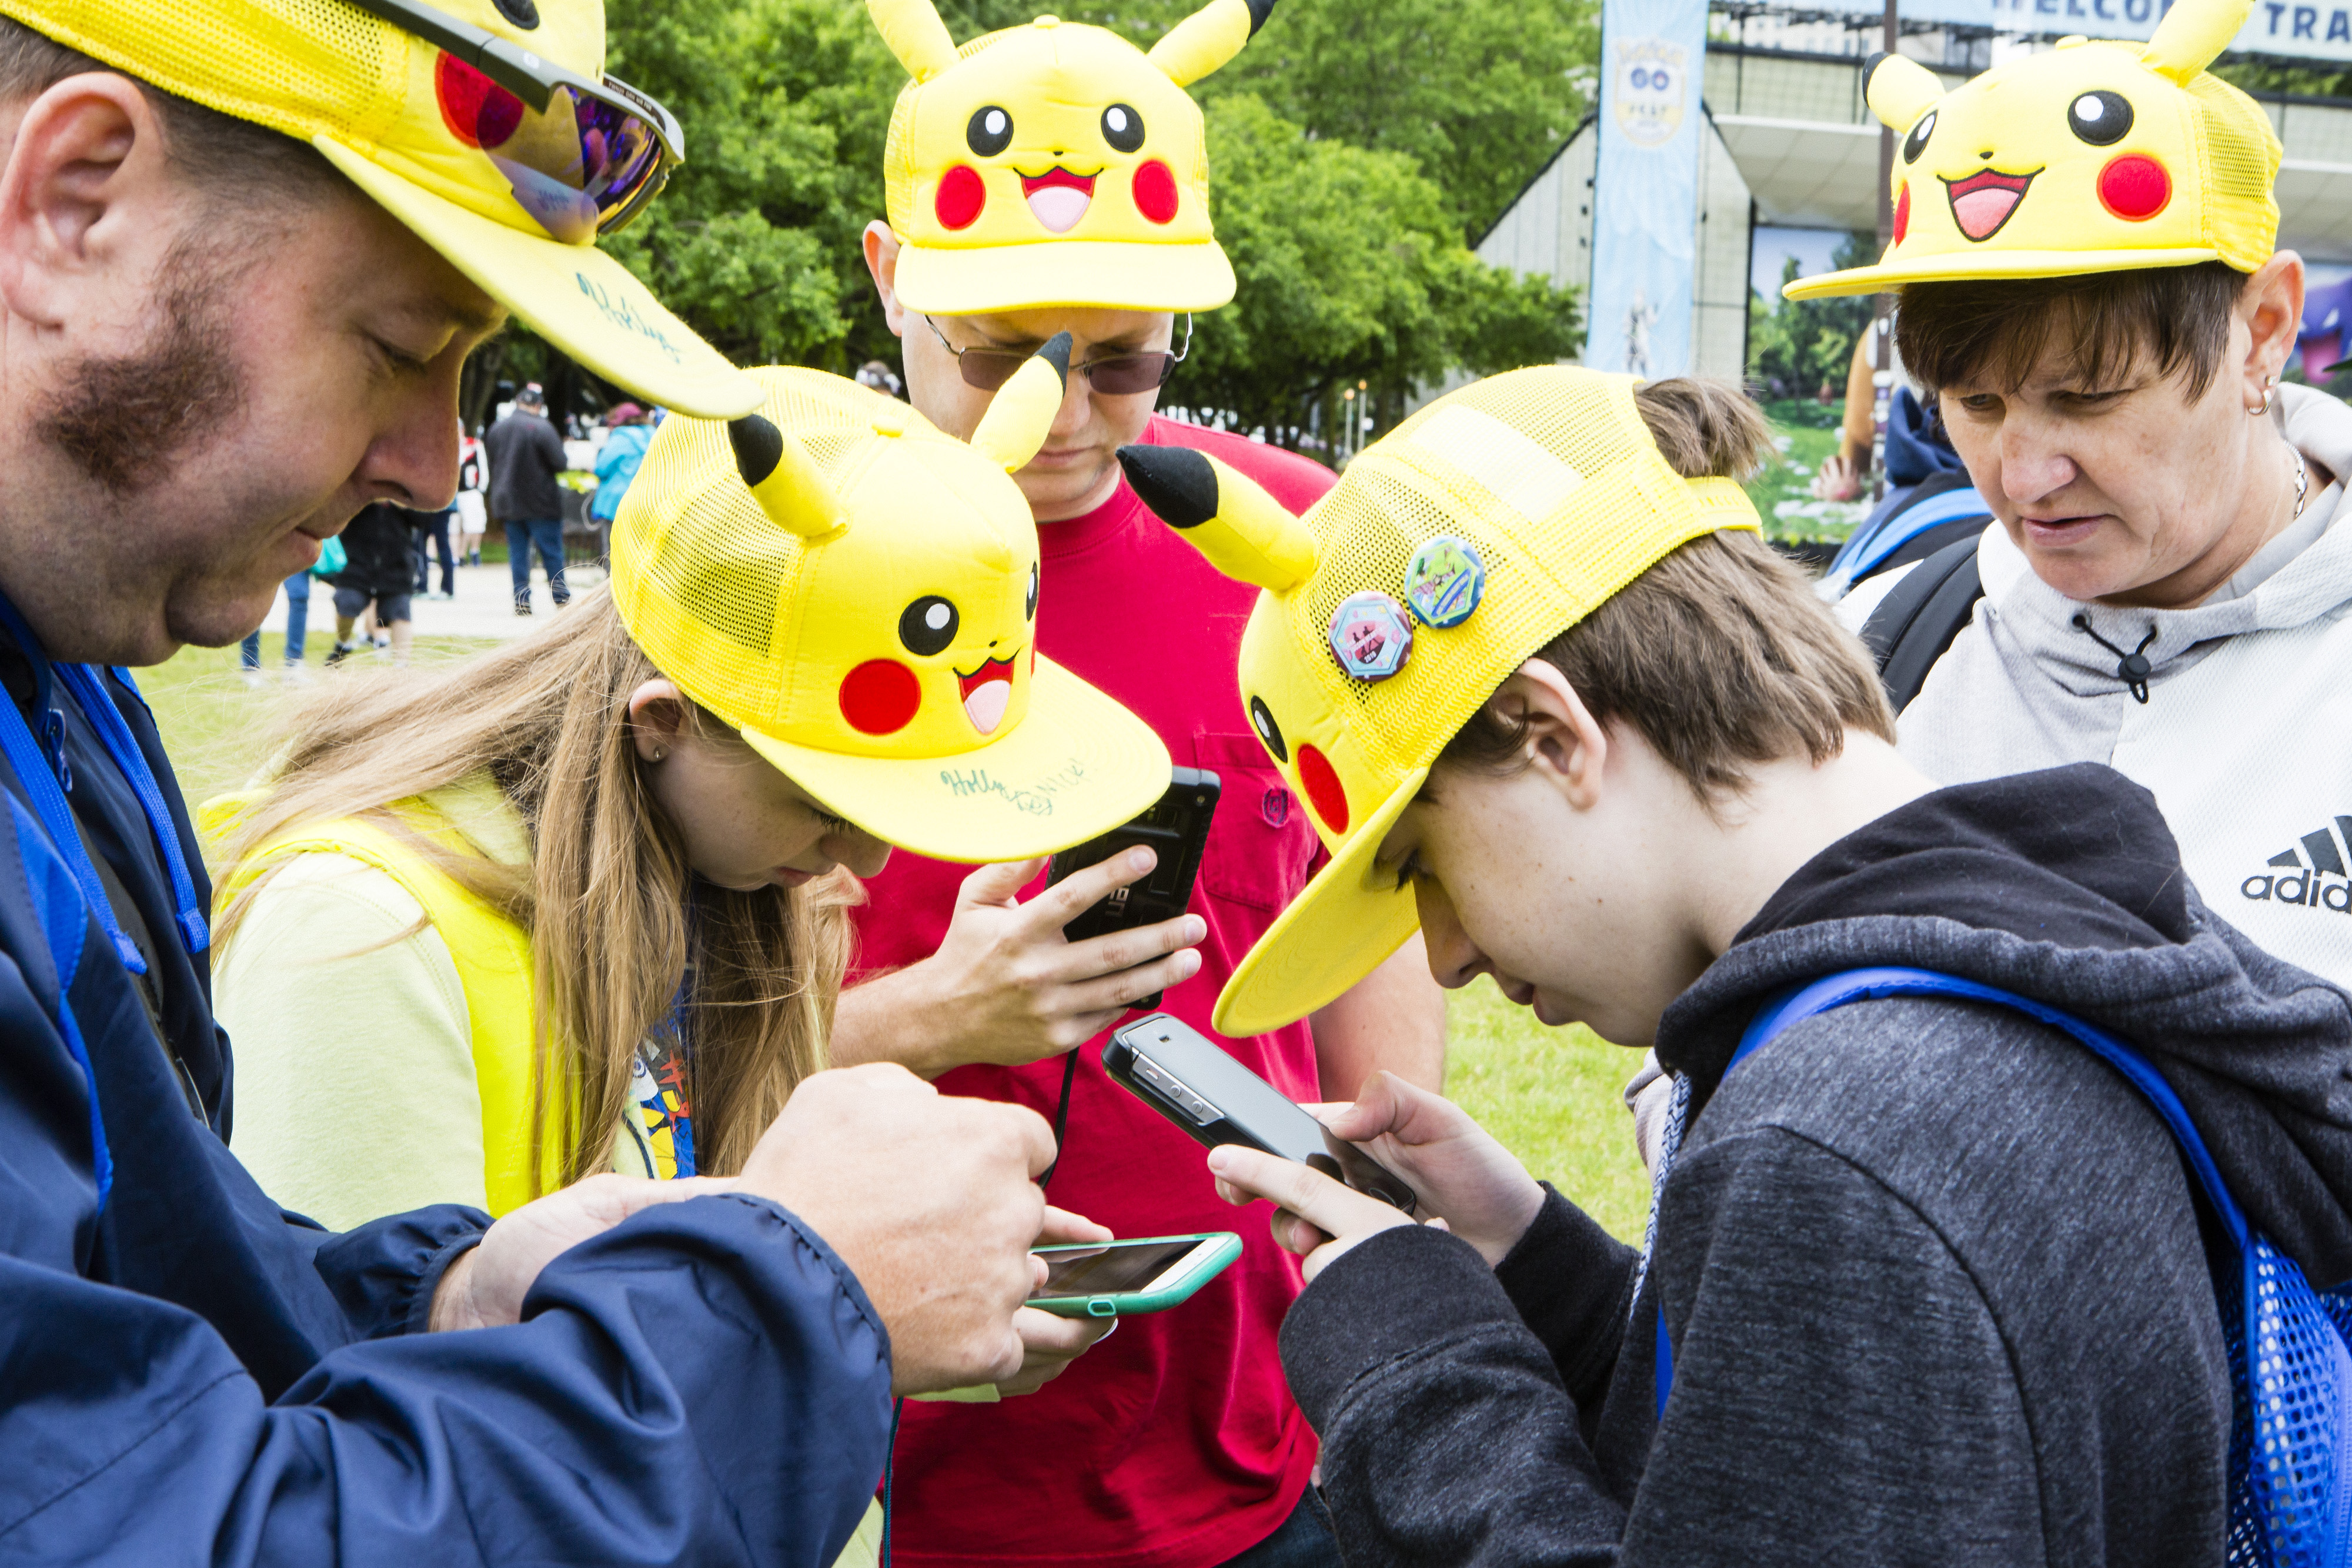 Pokémon Go Fest 2019: Everything you need to know - Chicago